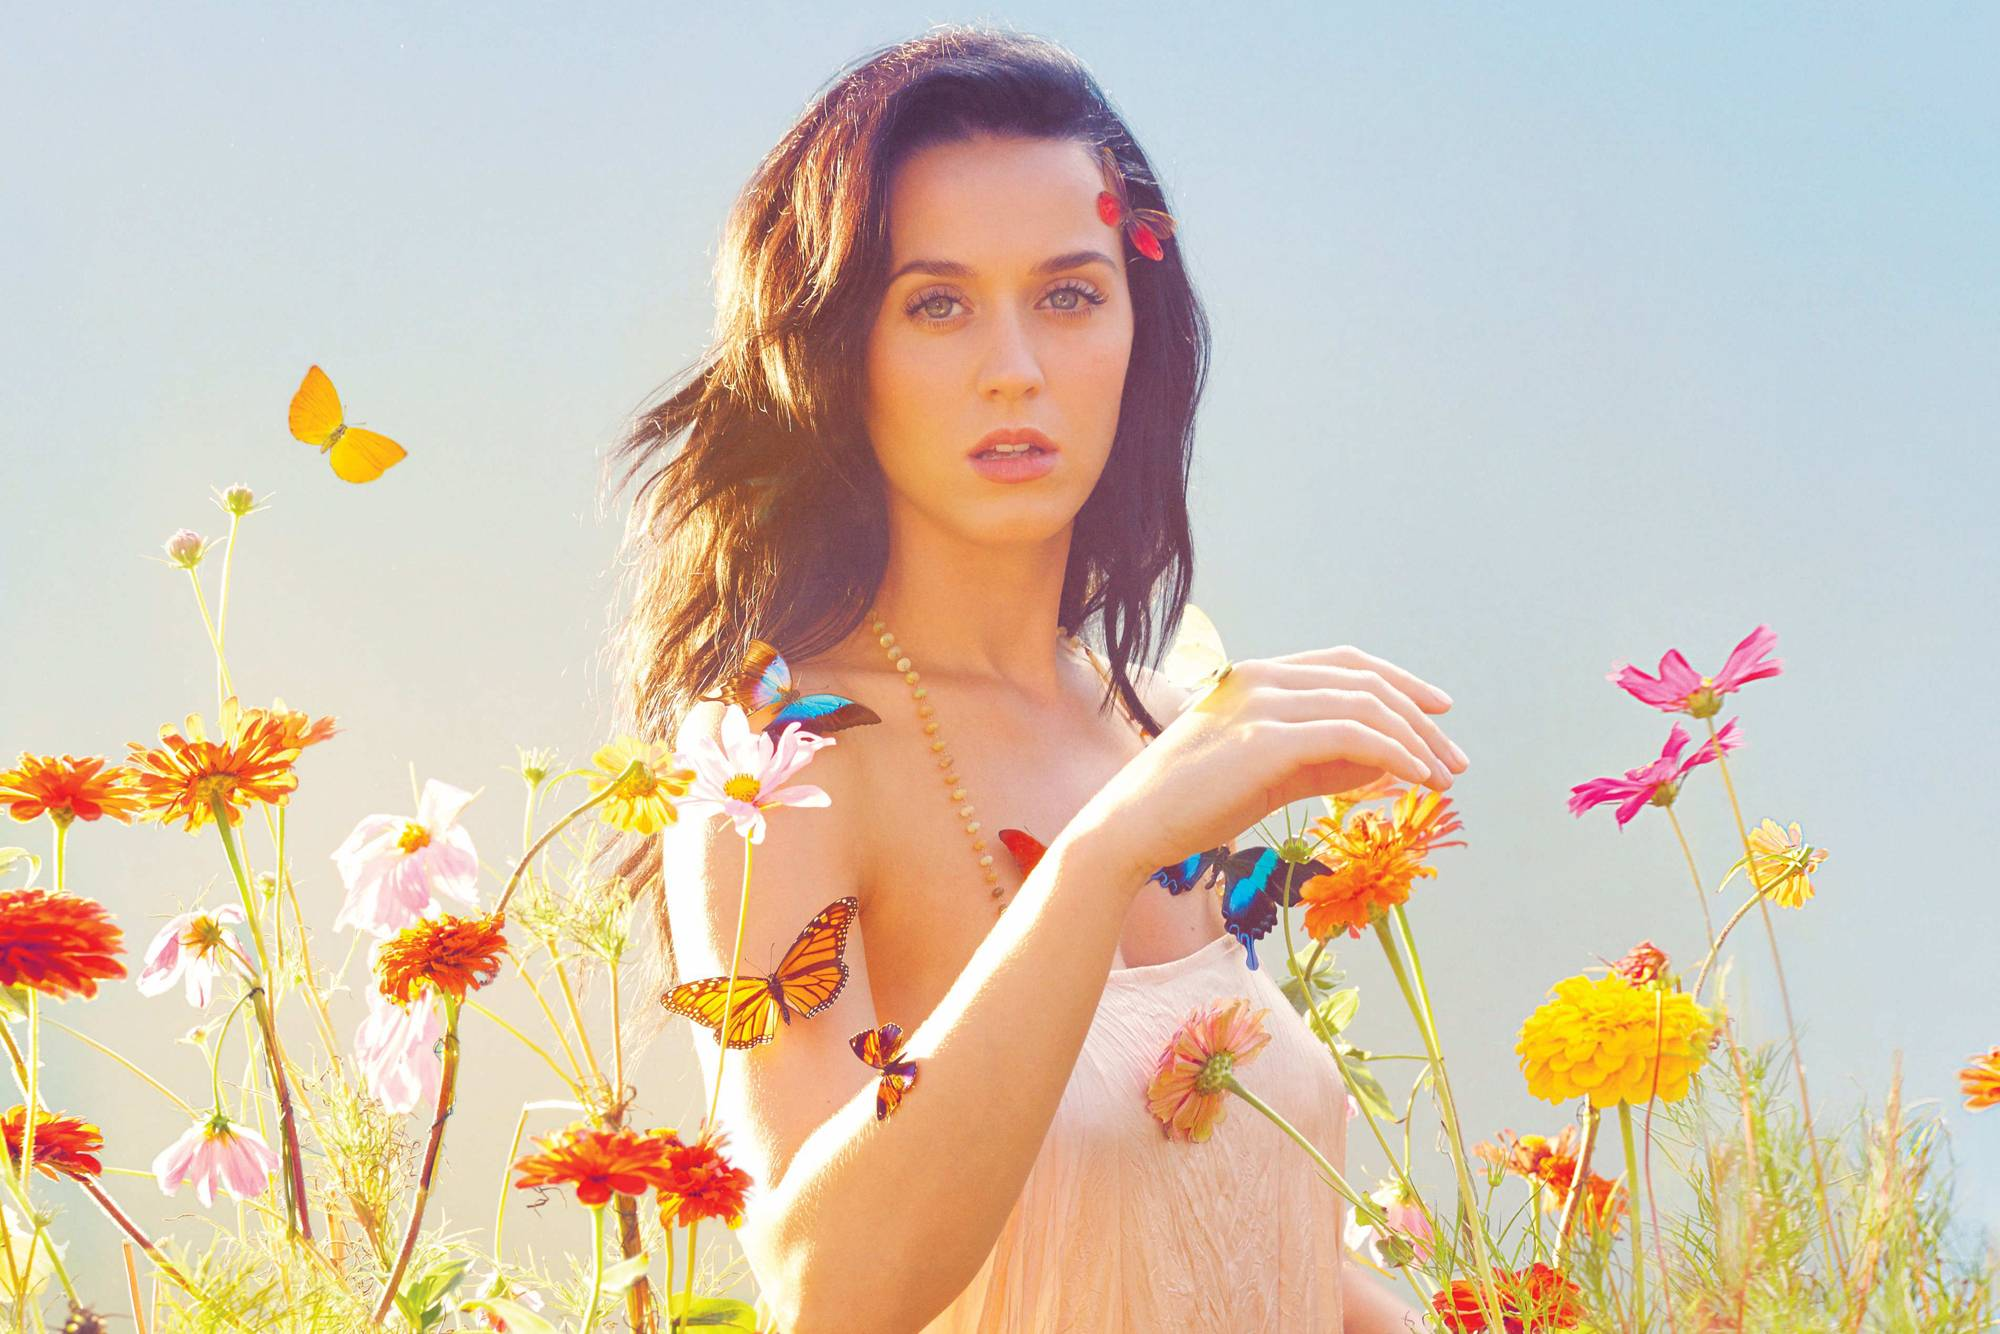 Wallpaper iphone katy perry - Katy Perry Moves In A New Direction With Prism New York Post